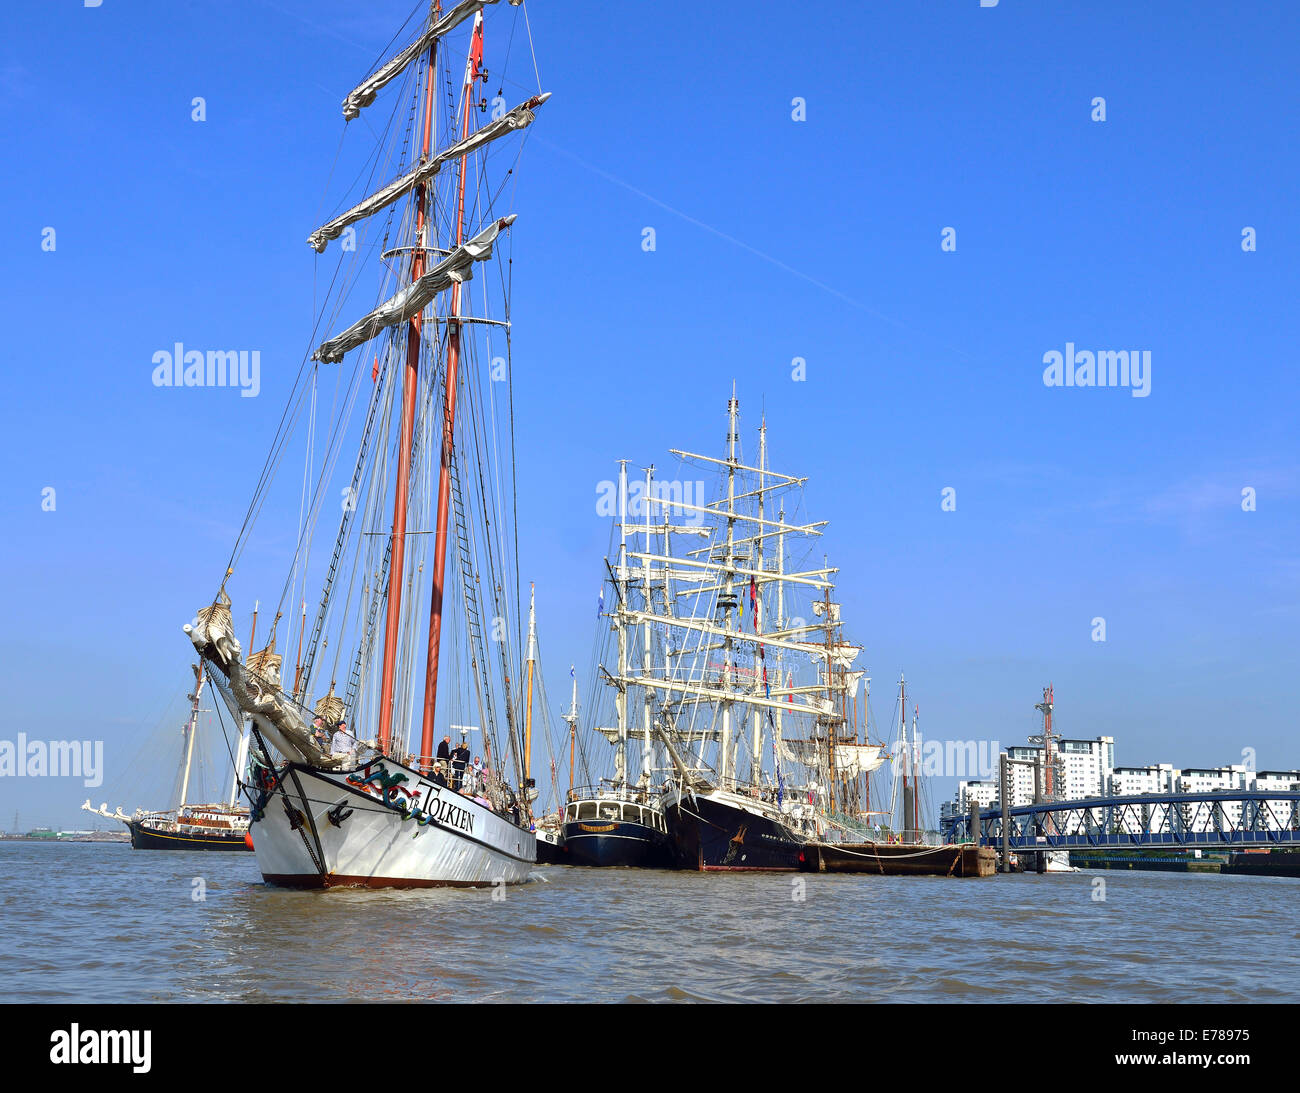 .Royal Greenwich Tall Ships 2014- Day trips on Tall Ship s from the Royal Arsenal Woolwich with 'Tolkien' - Stock Image